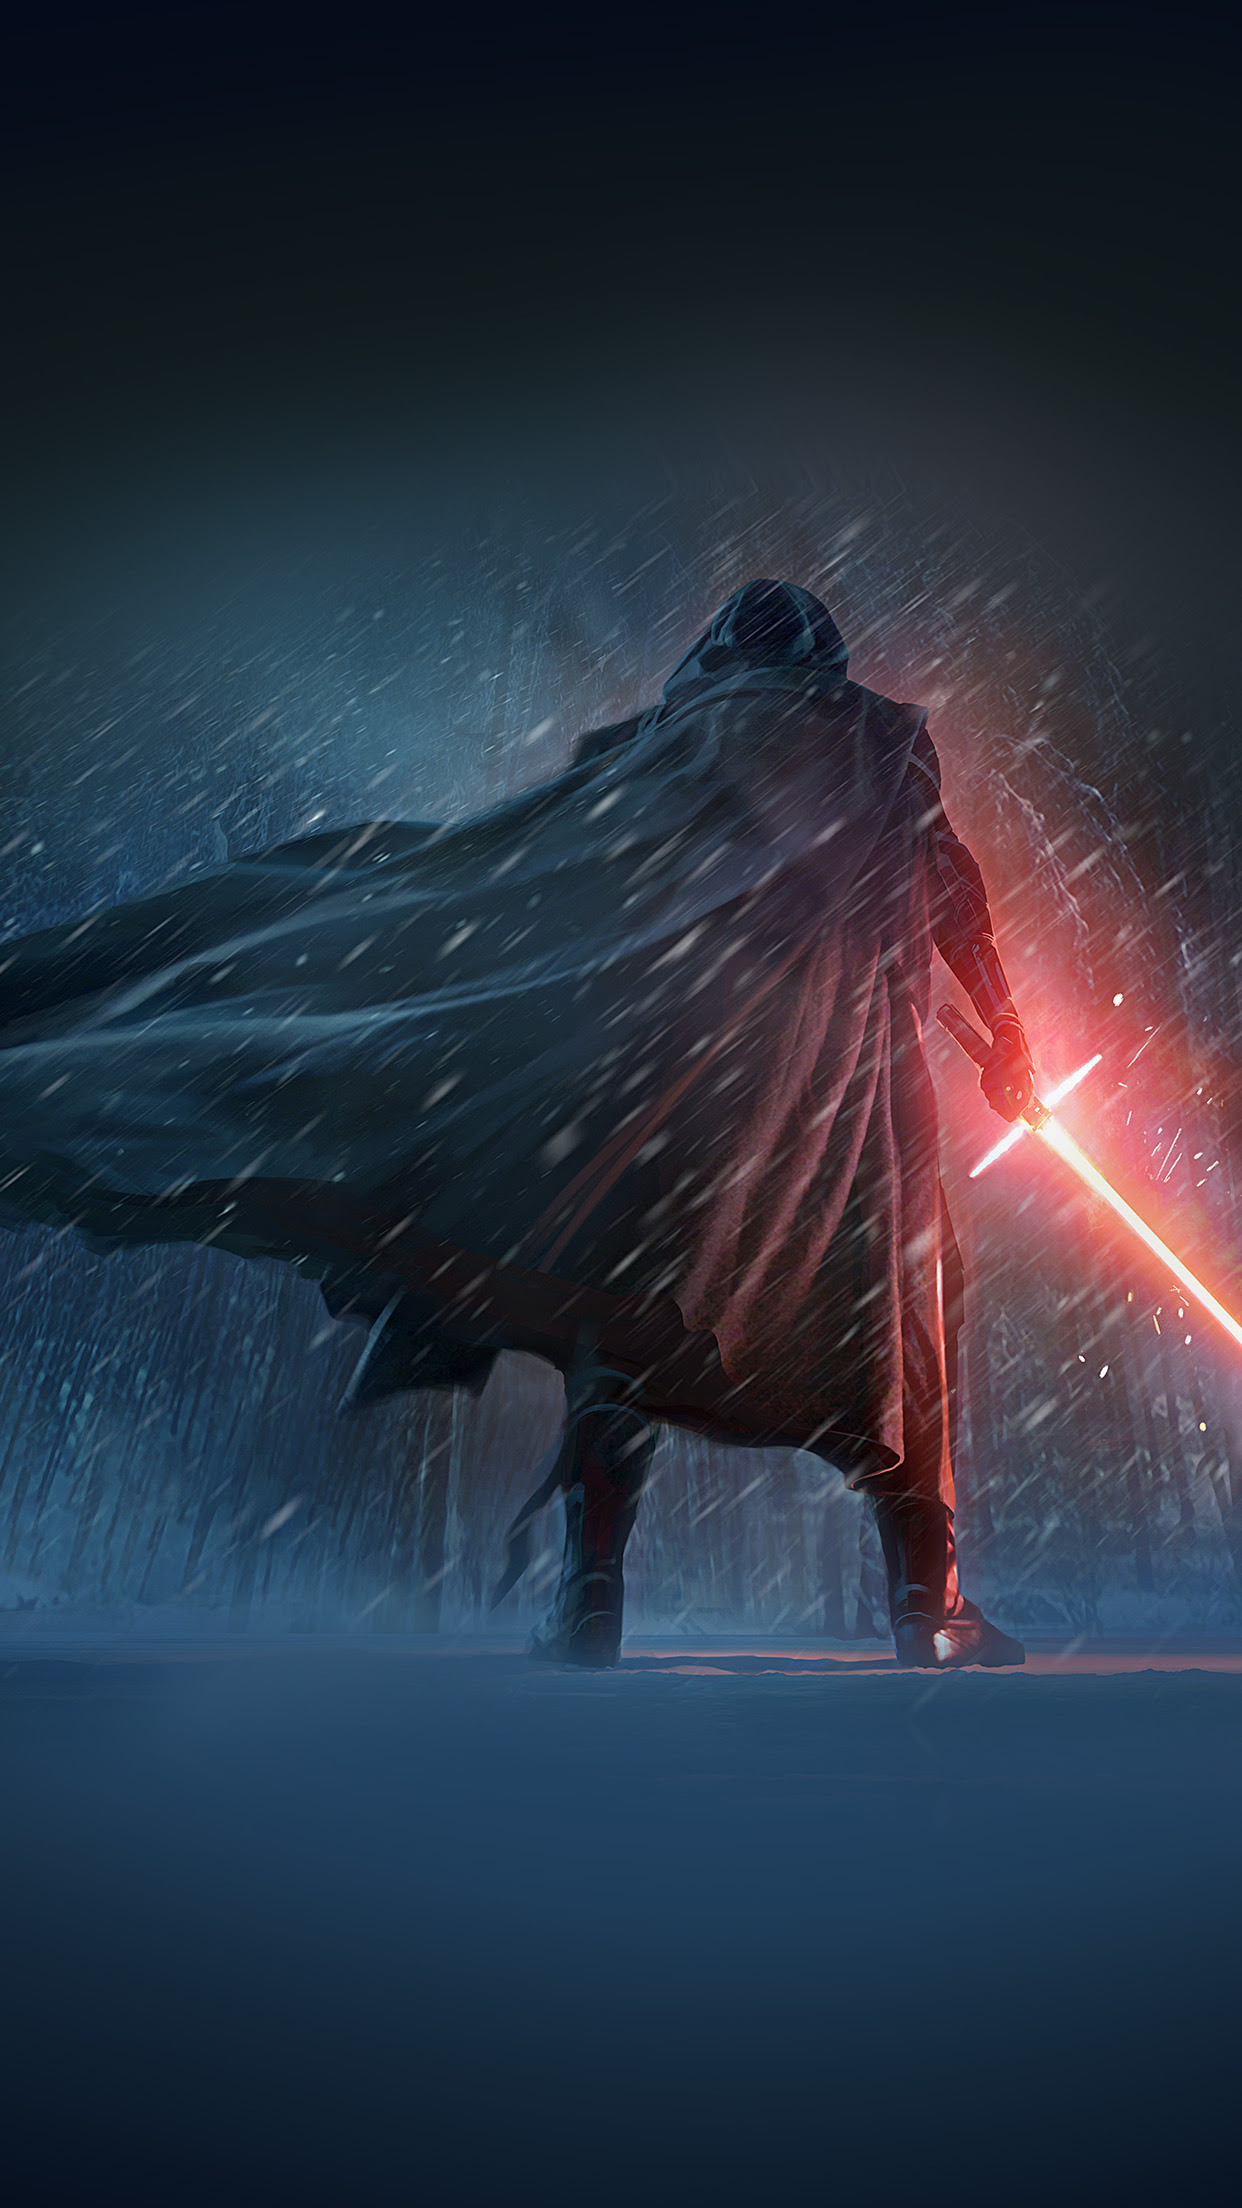 Iphone6papers Ao70 Darth Vader Starwars 7 Poster Film Art